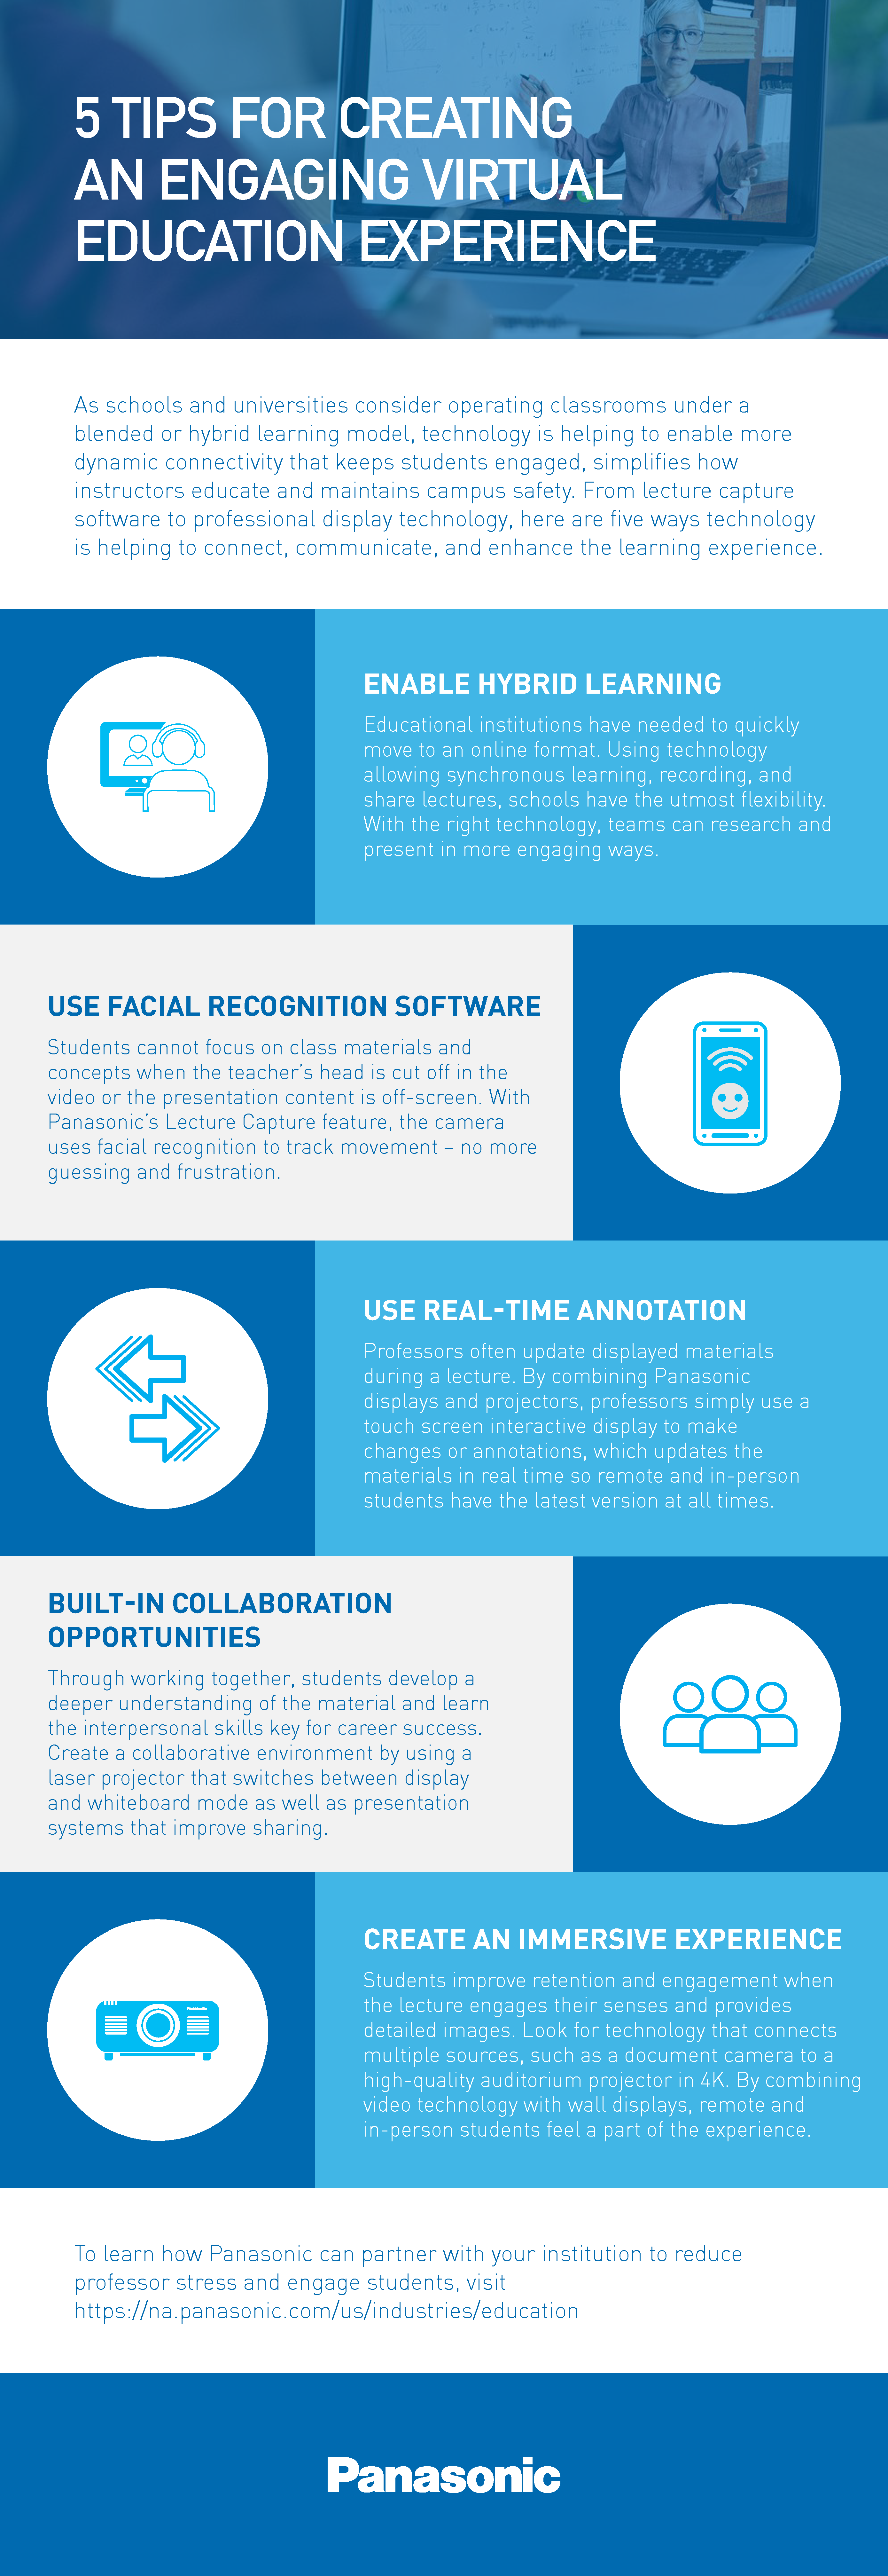 Panasonic_PIVS_5_Tips_For_Creating_an_Engaging_Virtual_Education_Experience_Templated_Infographic_v3.png